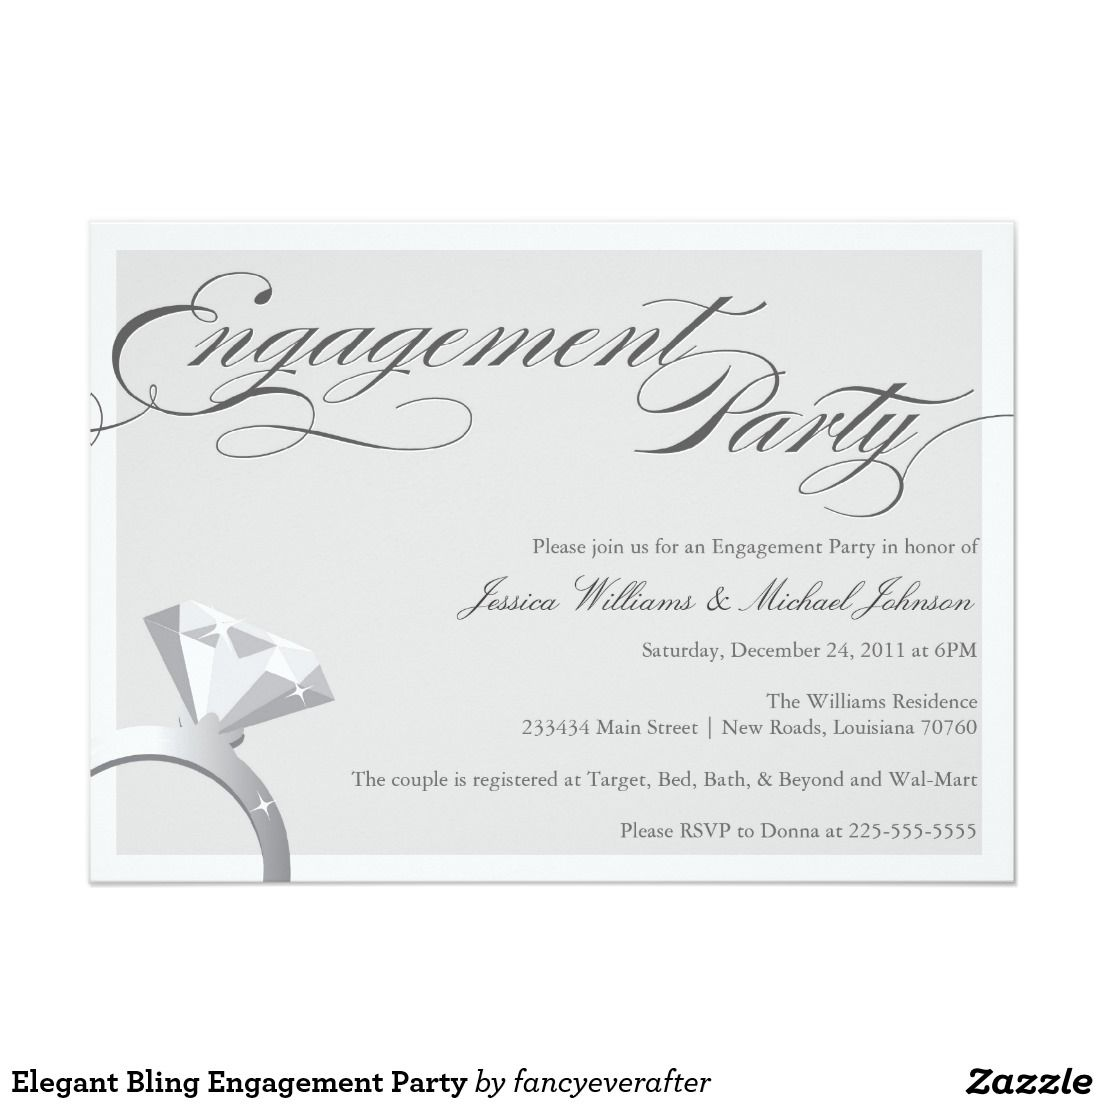 Elegant Bling Engagement Party Card   Wedding :Engagement Party ...